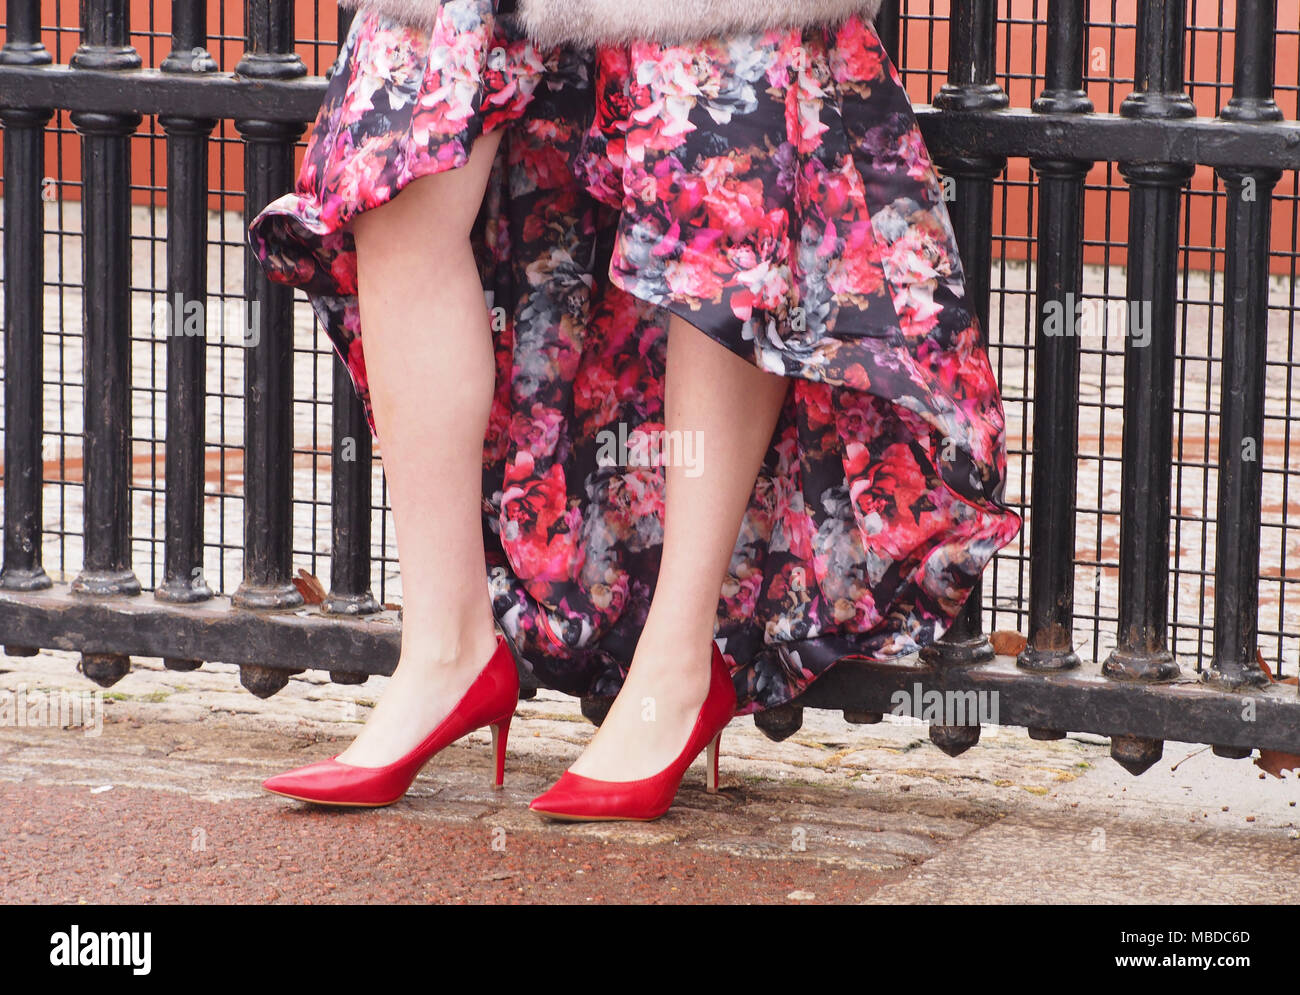 A young woman's legs and ankles wearing red stiletto heels and a flowery dress in front of heavy metal railings at Buckingham Palace, London - Stock Image